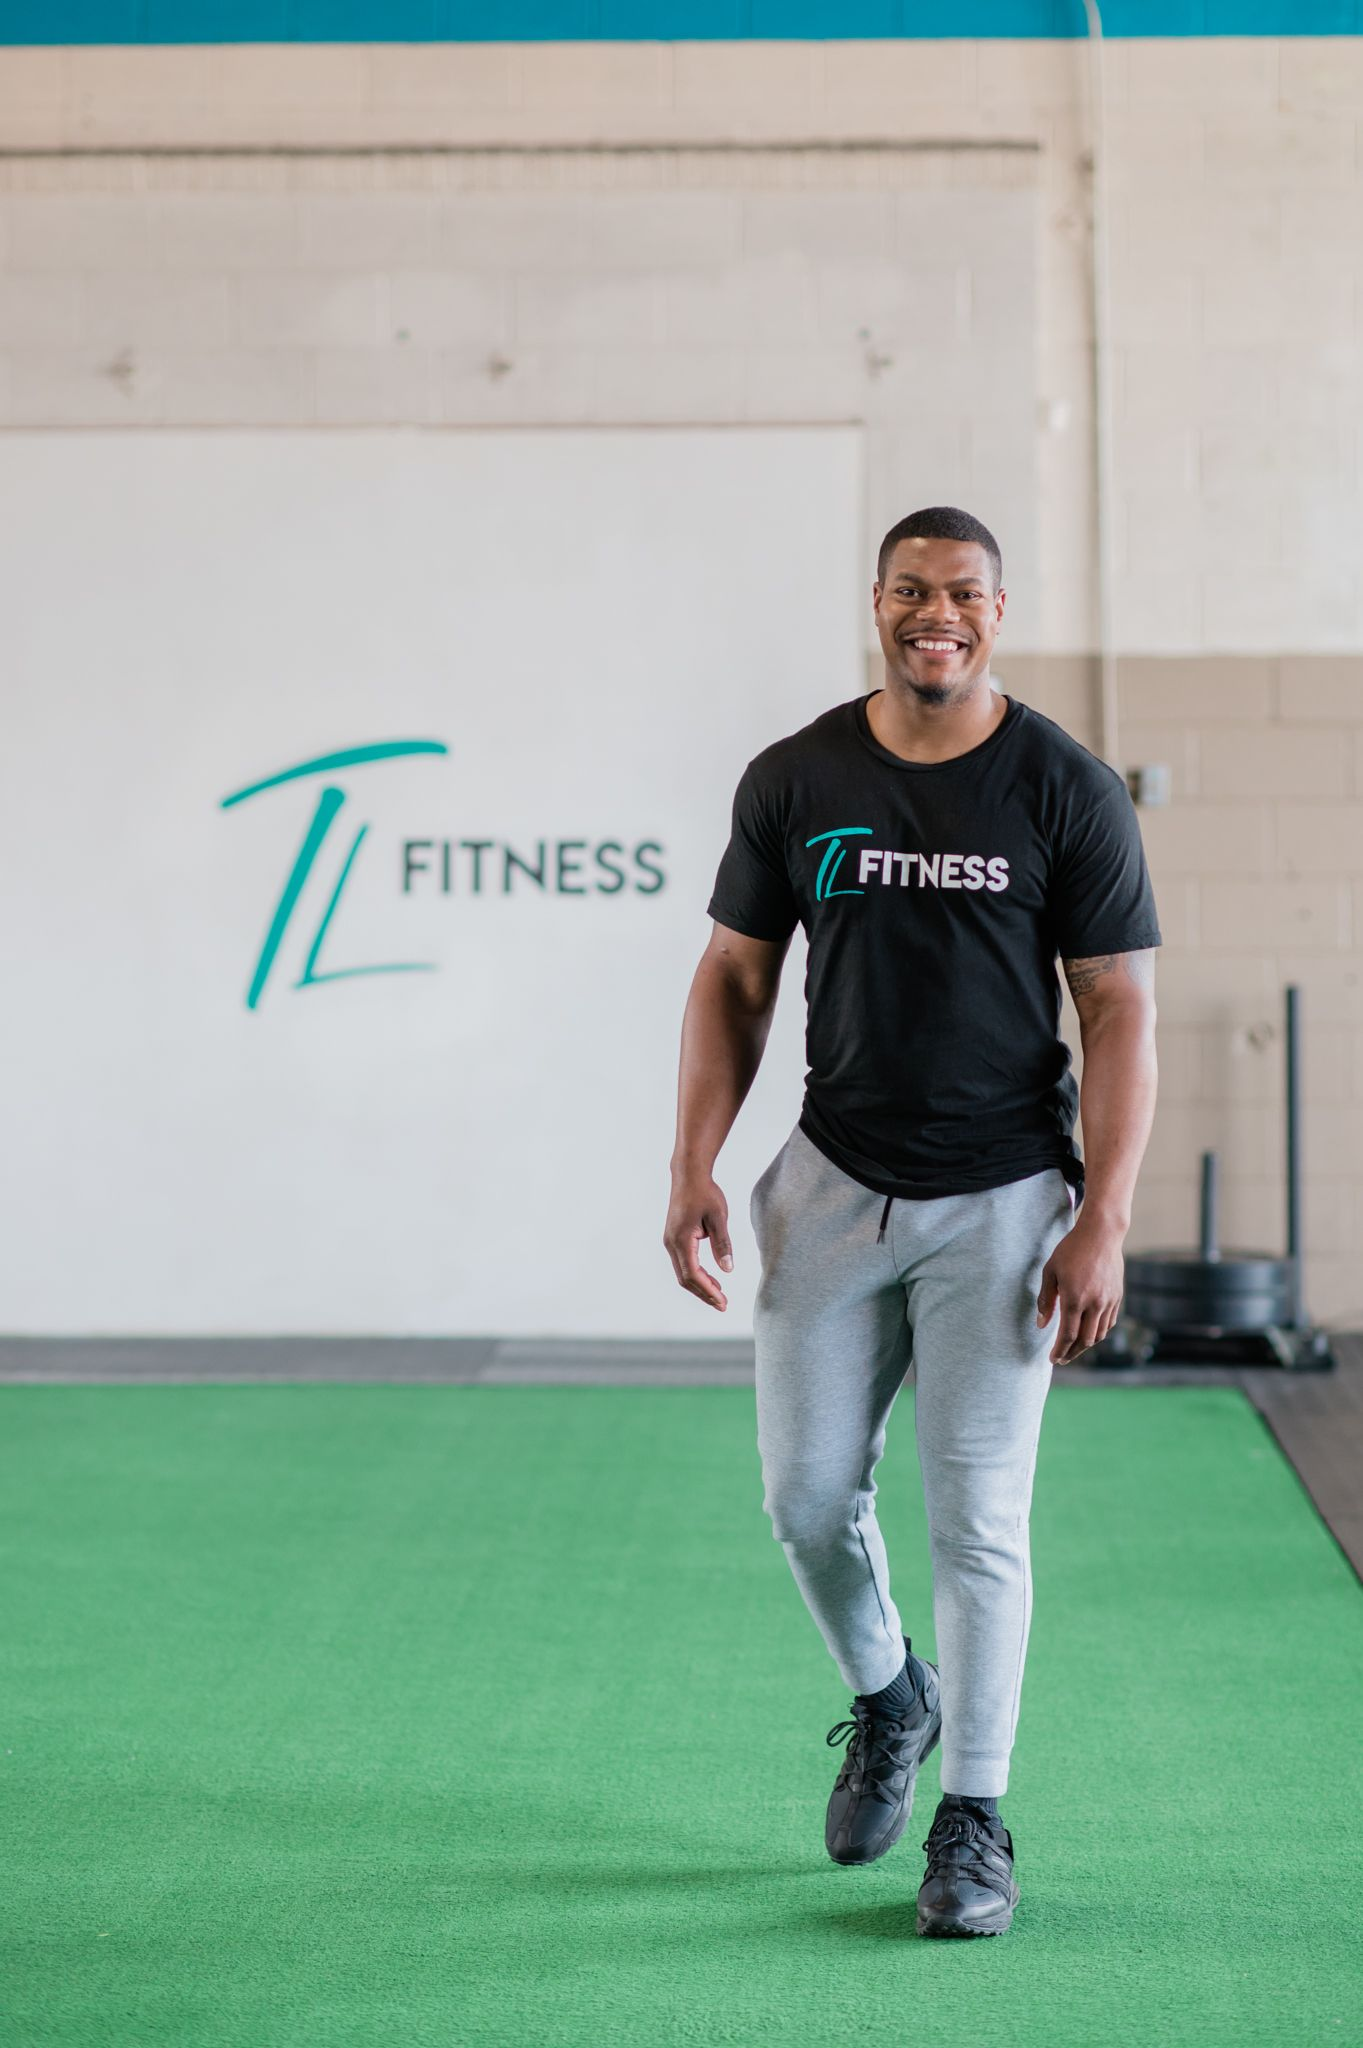 """A man, Torrey Lowe, smiles and walks towards the camera. He is in a gym with """"TL Fitness"""" written on the wall."""